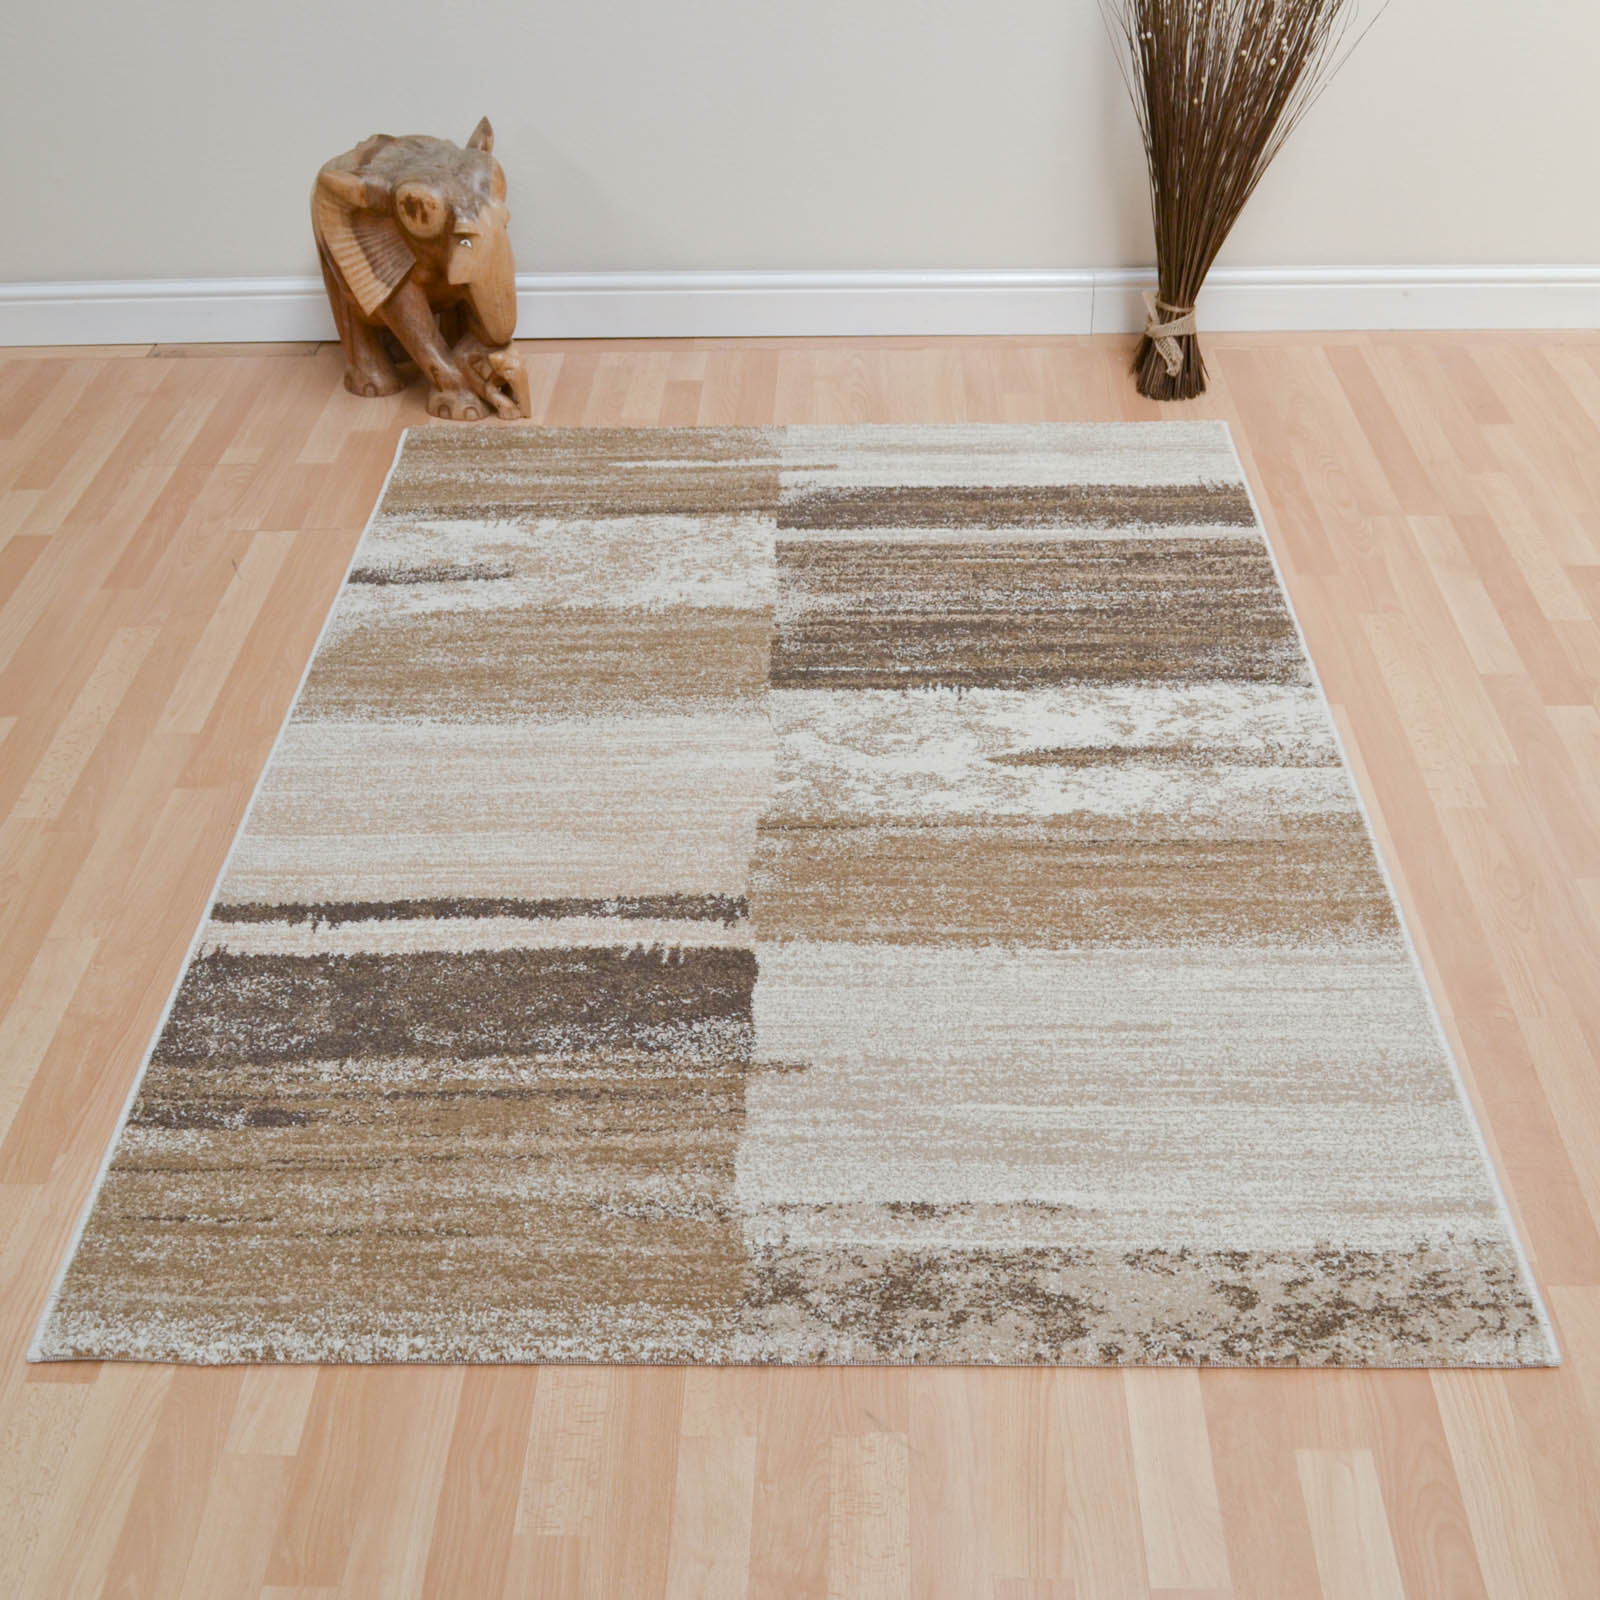 Tivoli Rugs 5899 227 Brown Beige